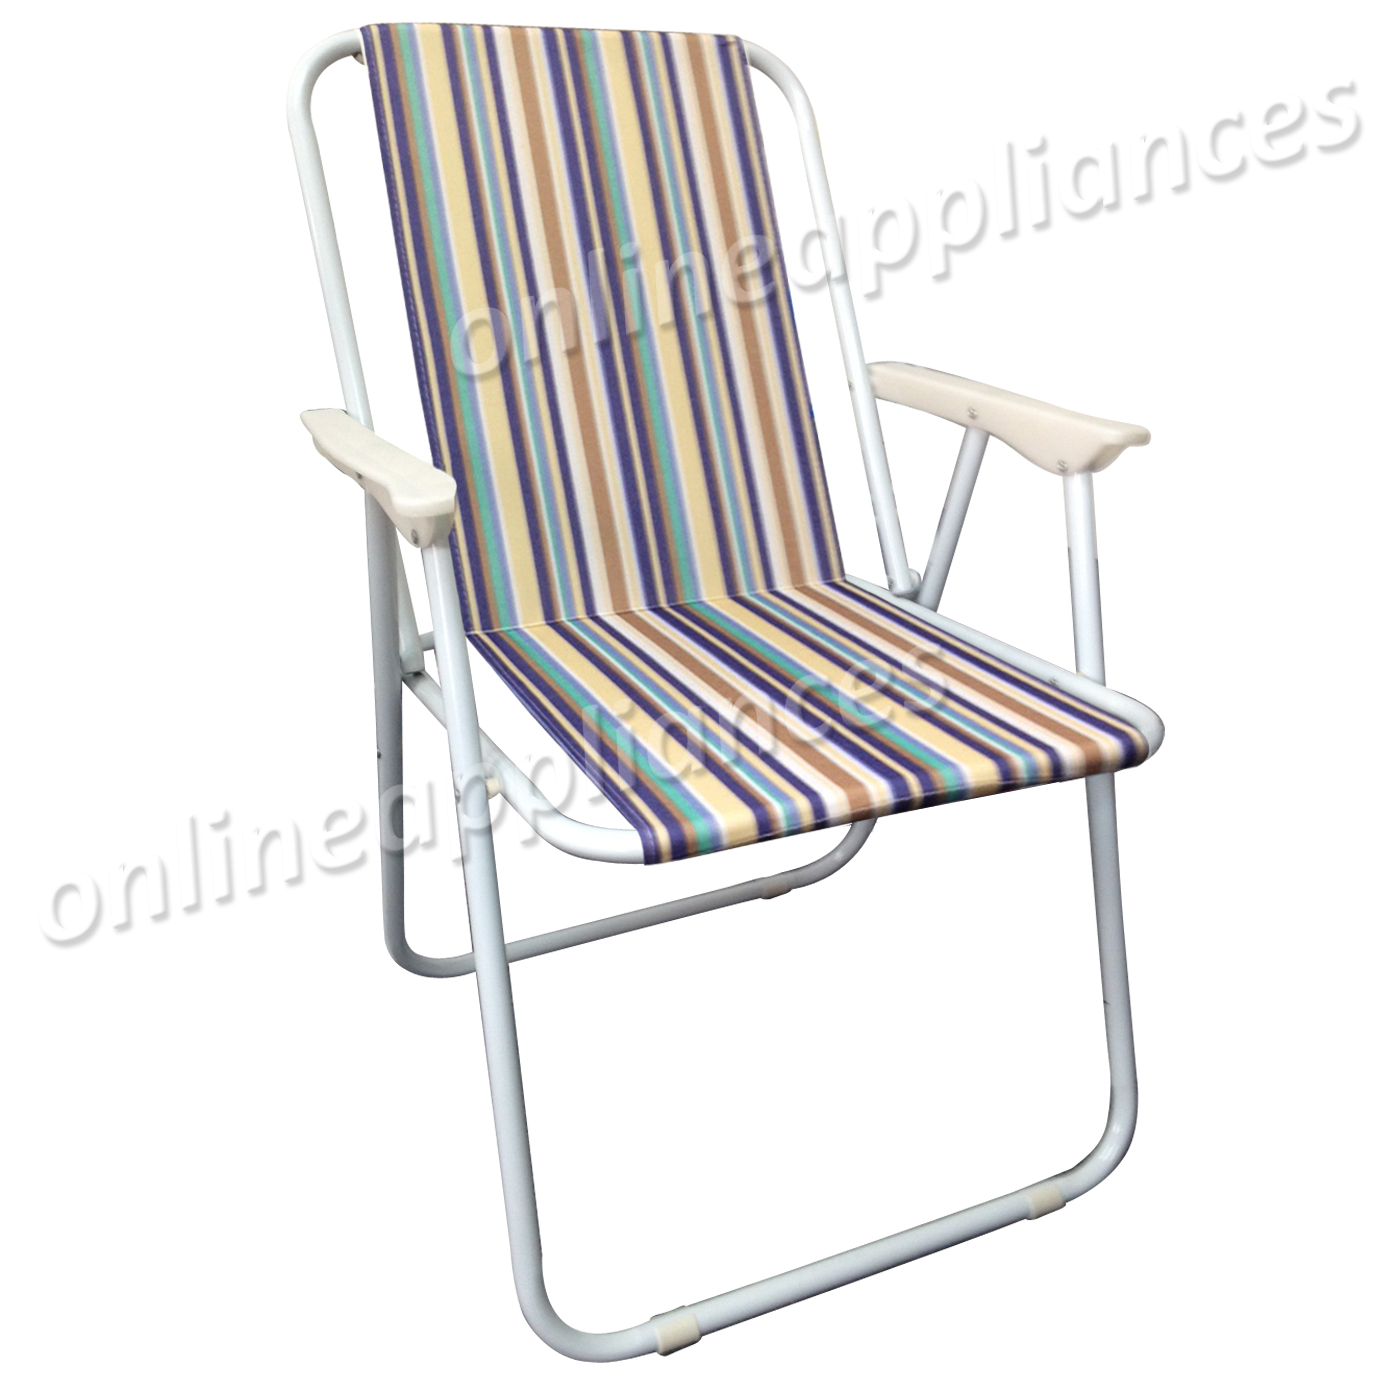 Outdoor Portable Chairs Lightweight Folding Portable Outdoor Garden Patio Beach